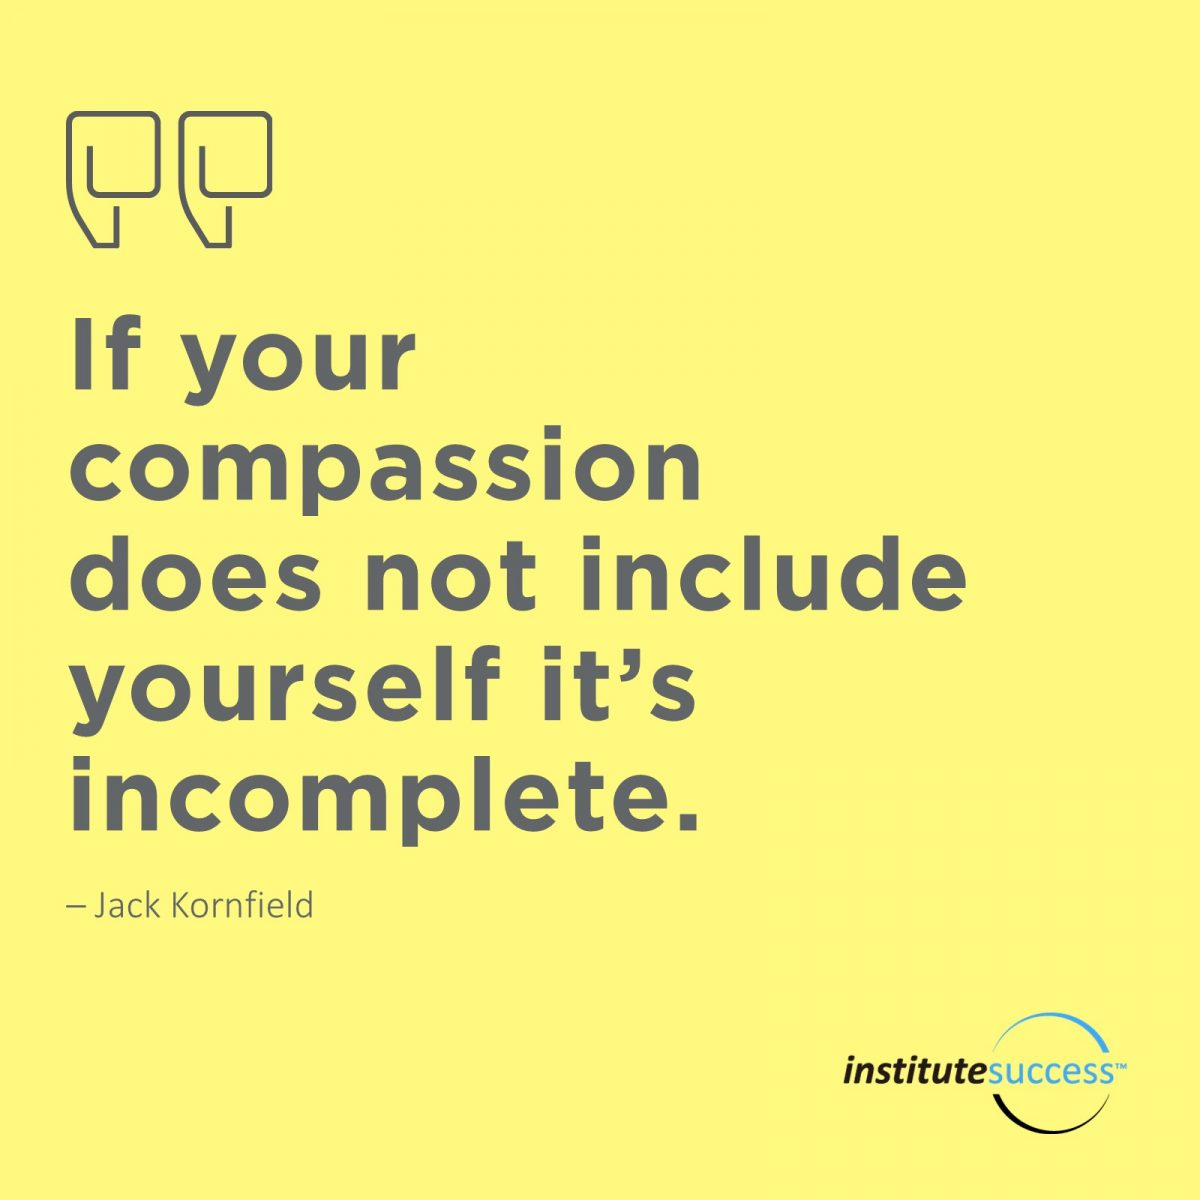 If your compassion does not include yourself it's incomplete – Jack Kornfield